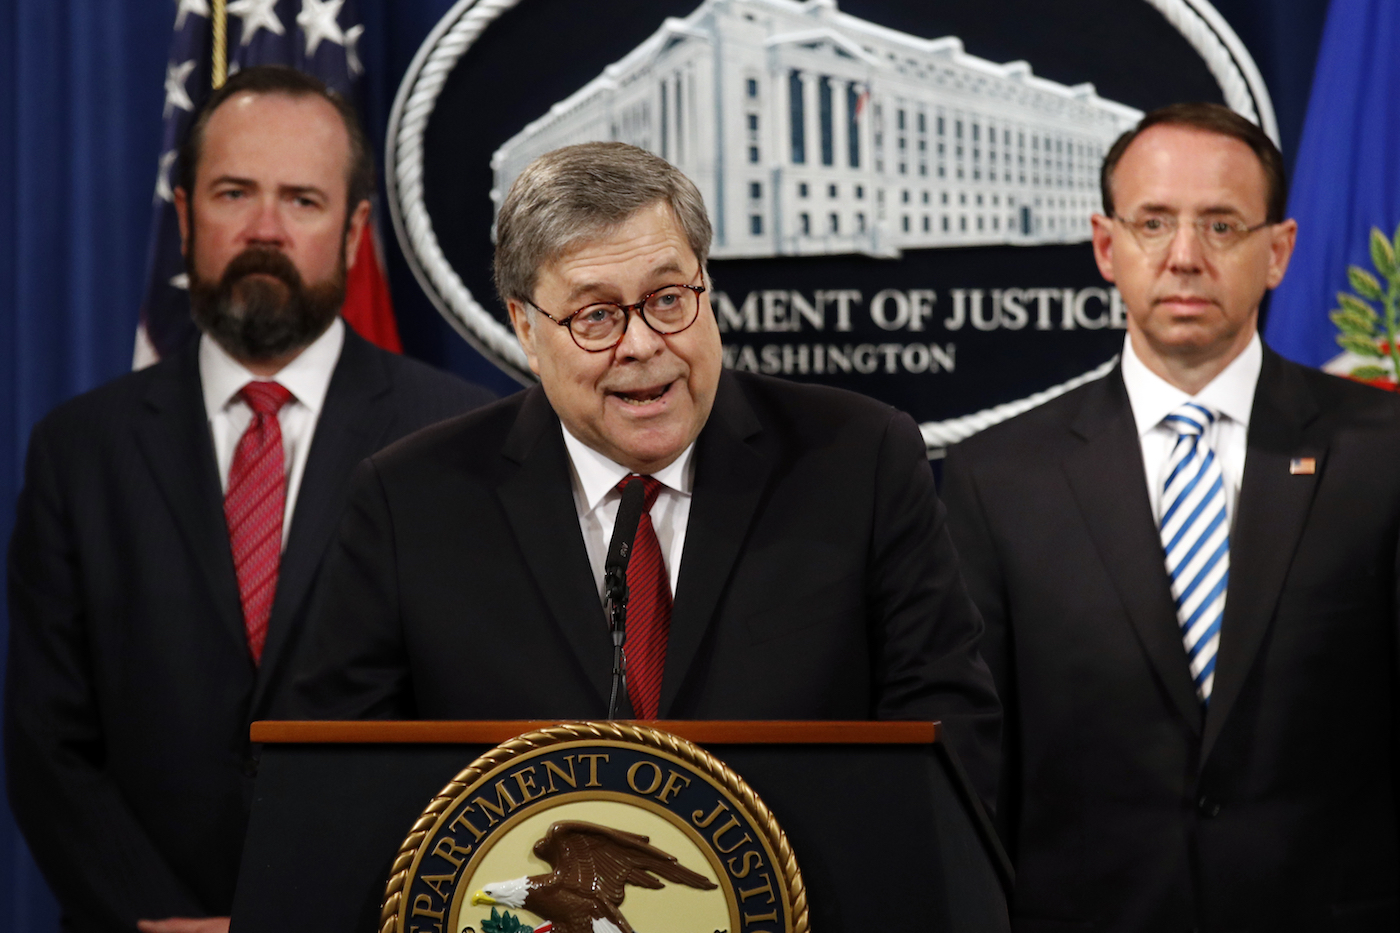 Attorney General William Barr speaks alongside Deputy Attorney General Rod Rosenstein, right, about the release of a redacted version of special counsel Robert Mueller's report during a news conference on April 18.